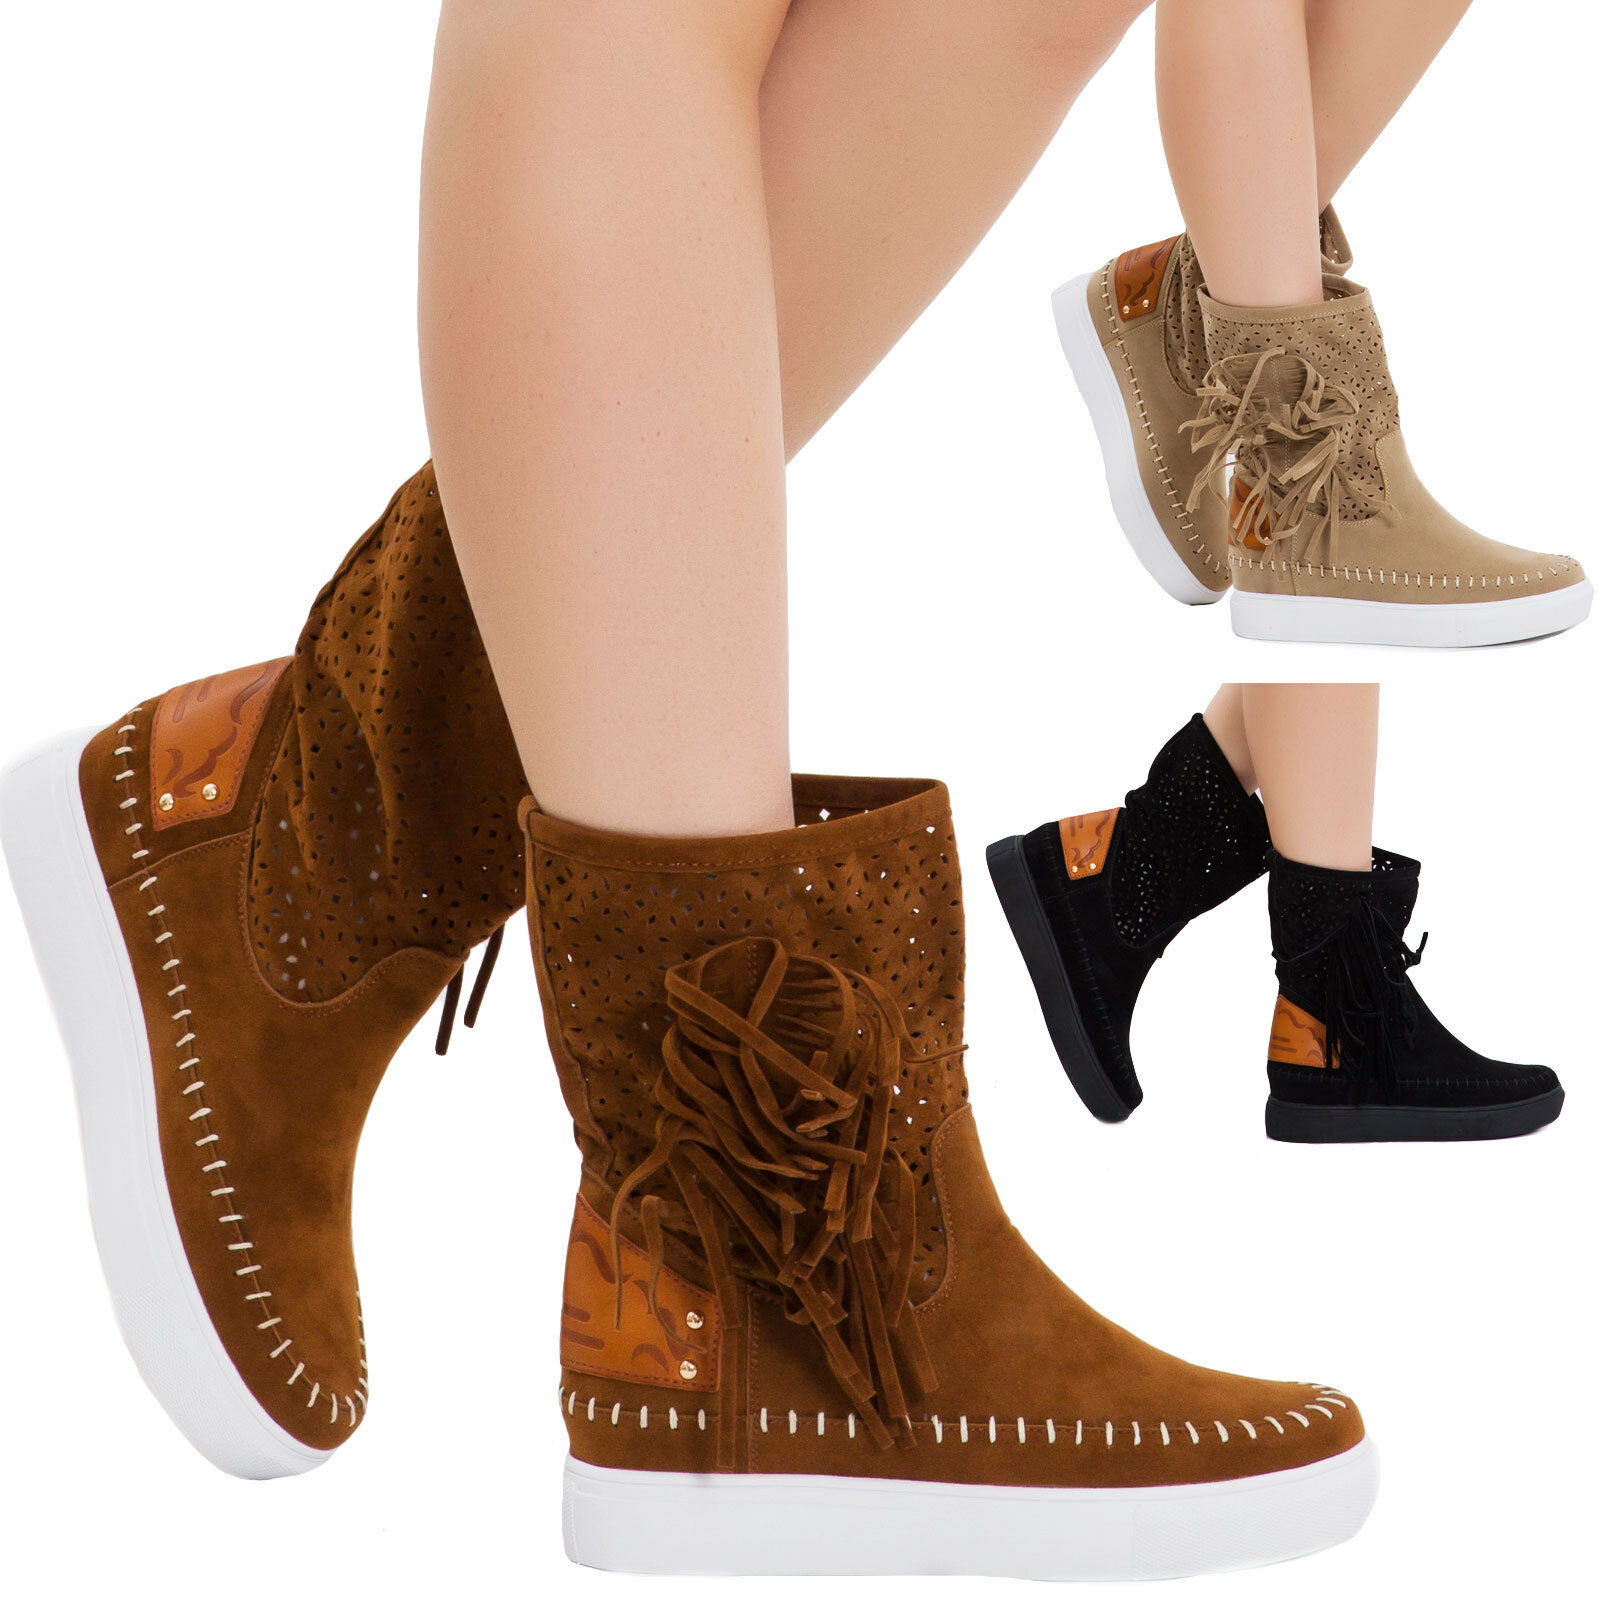 Women's boots shoes indianini perforated fringes wedge suede M9AX16051